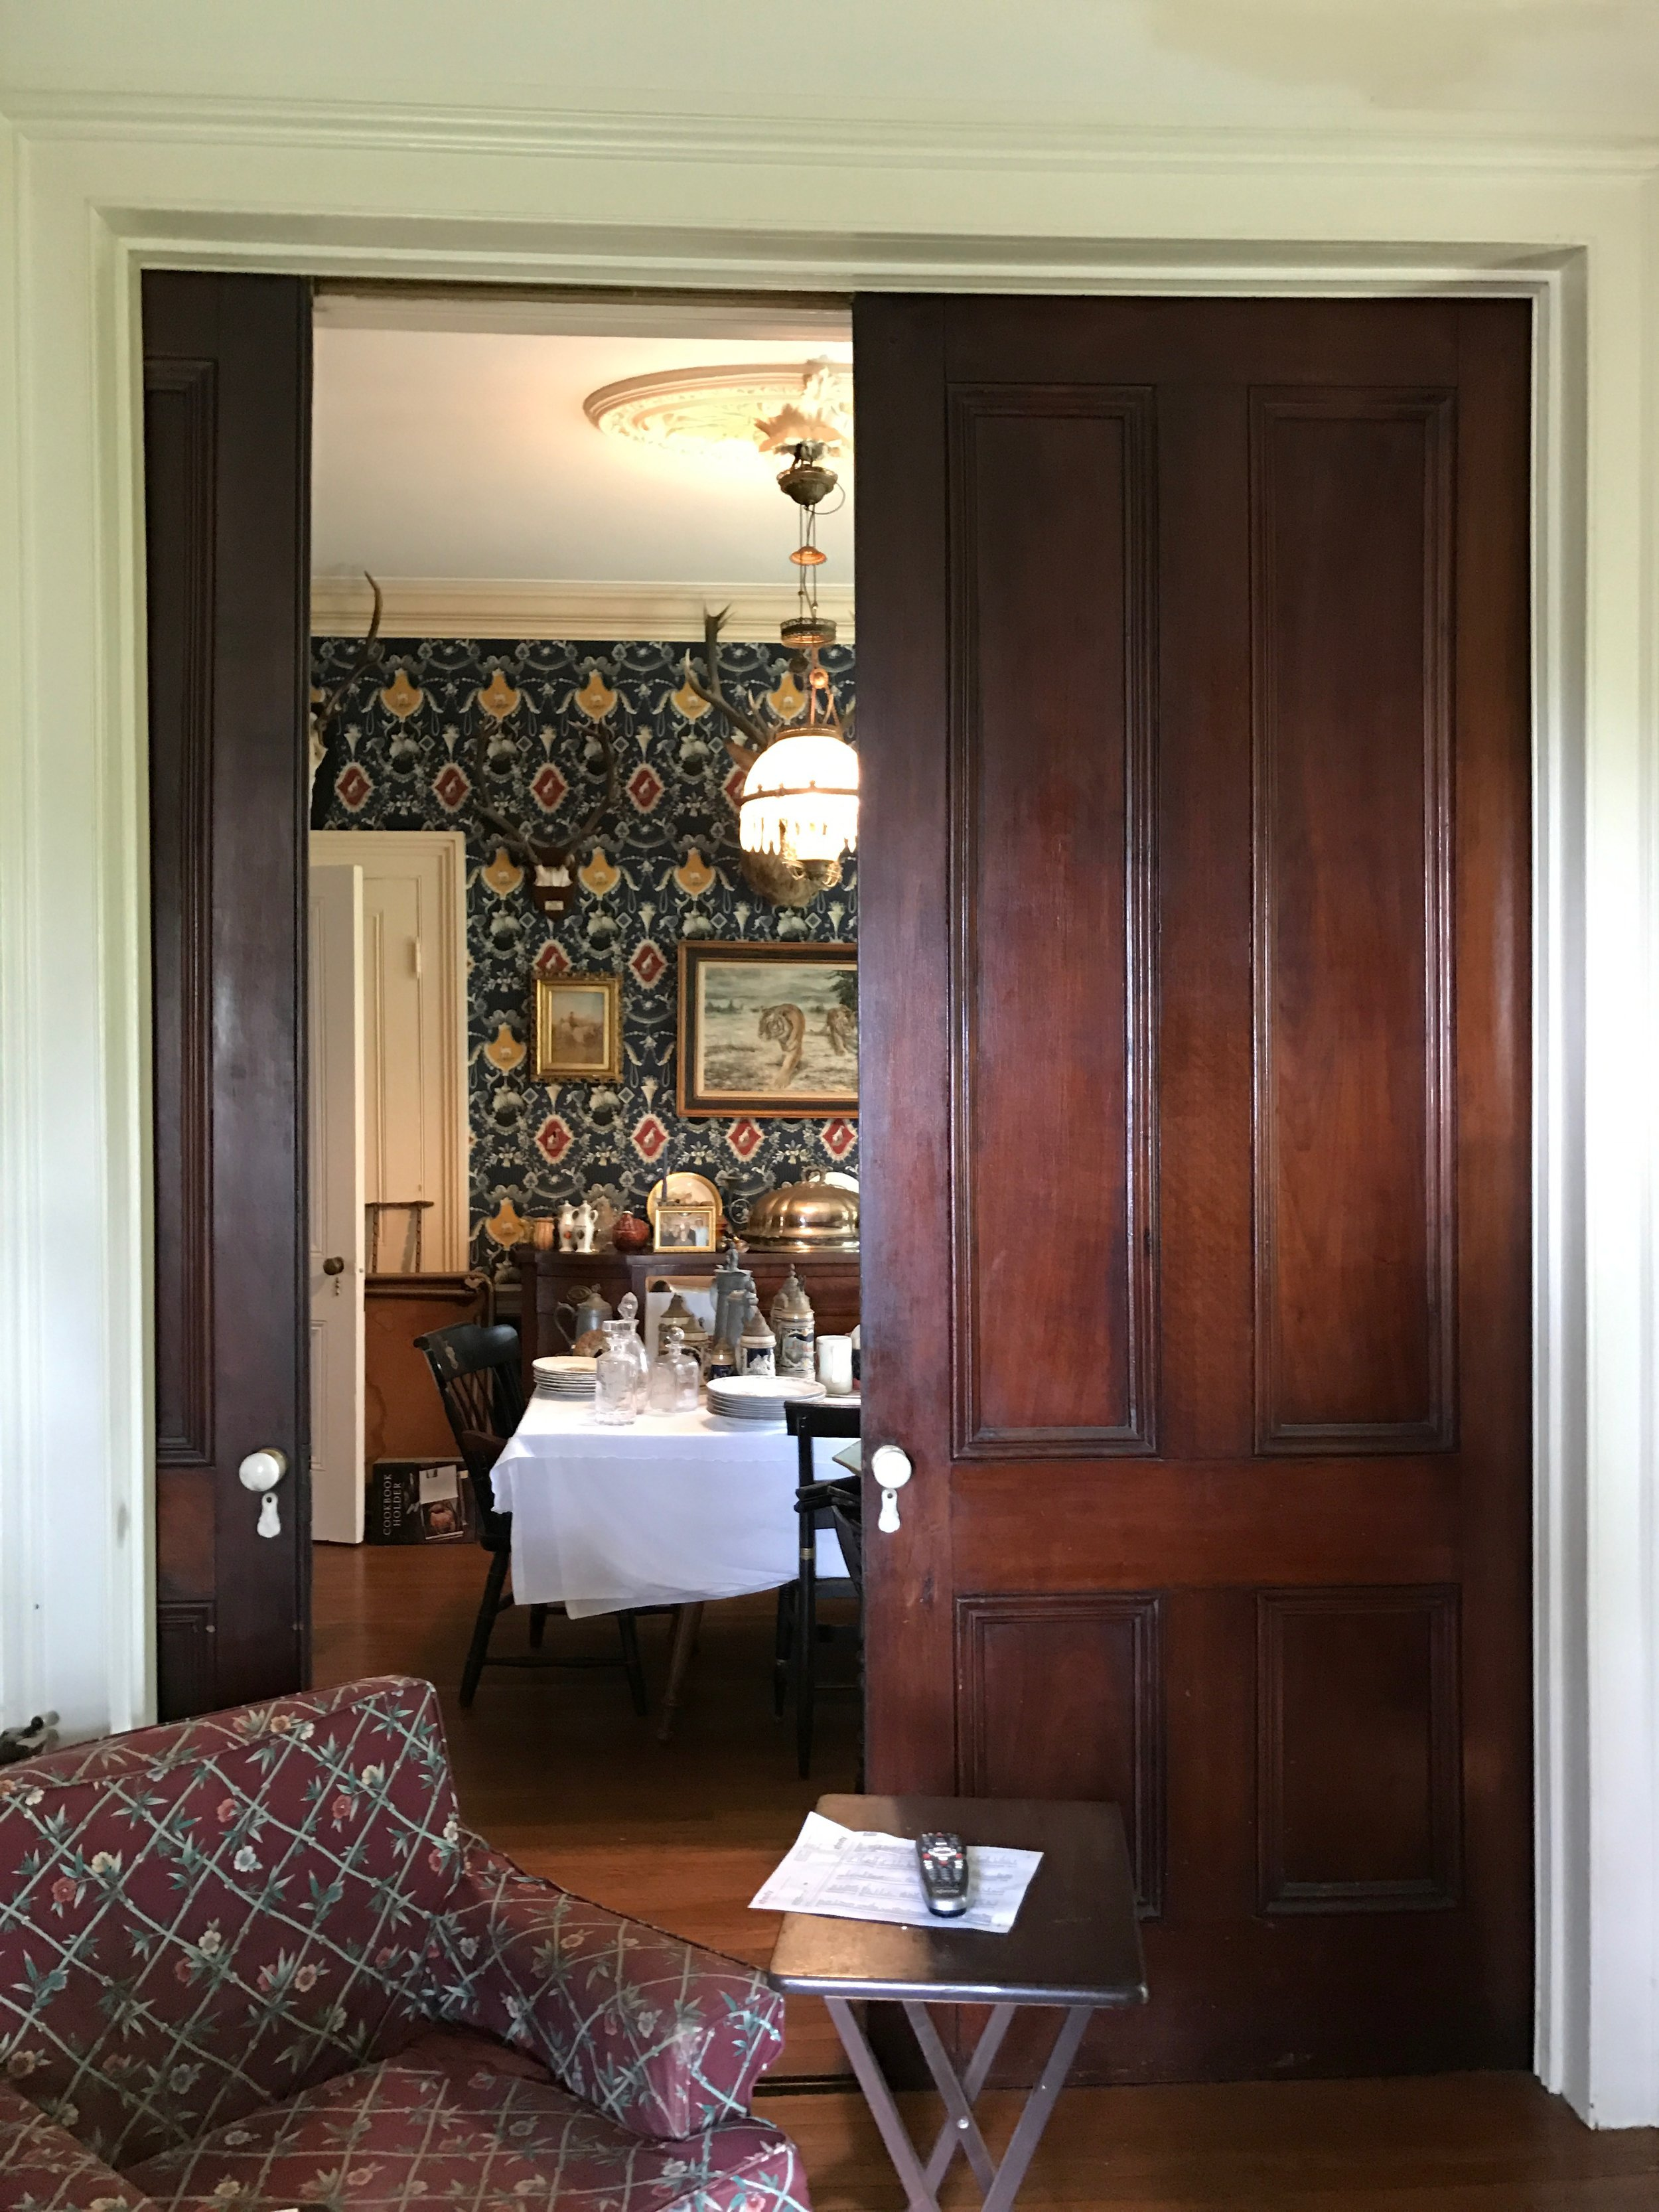 The cool pocket doors leading from the parlor to the dining room. Look at that wallpaper!